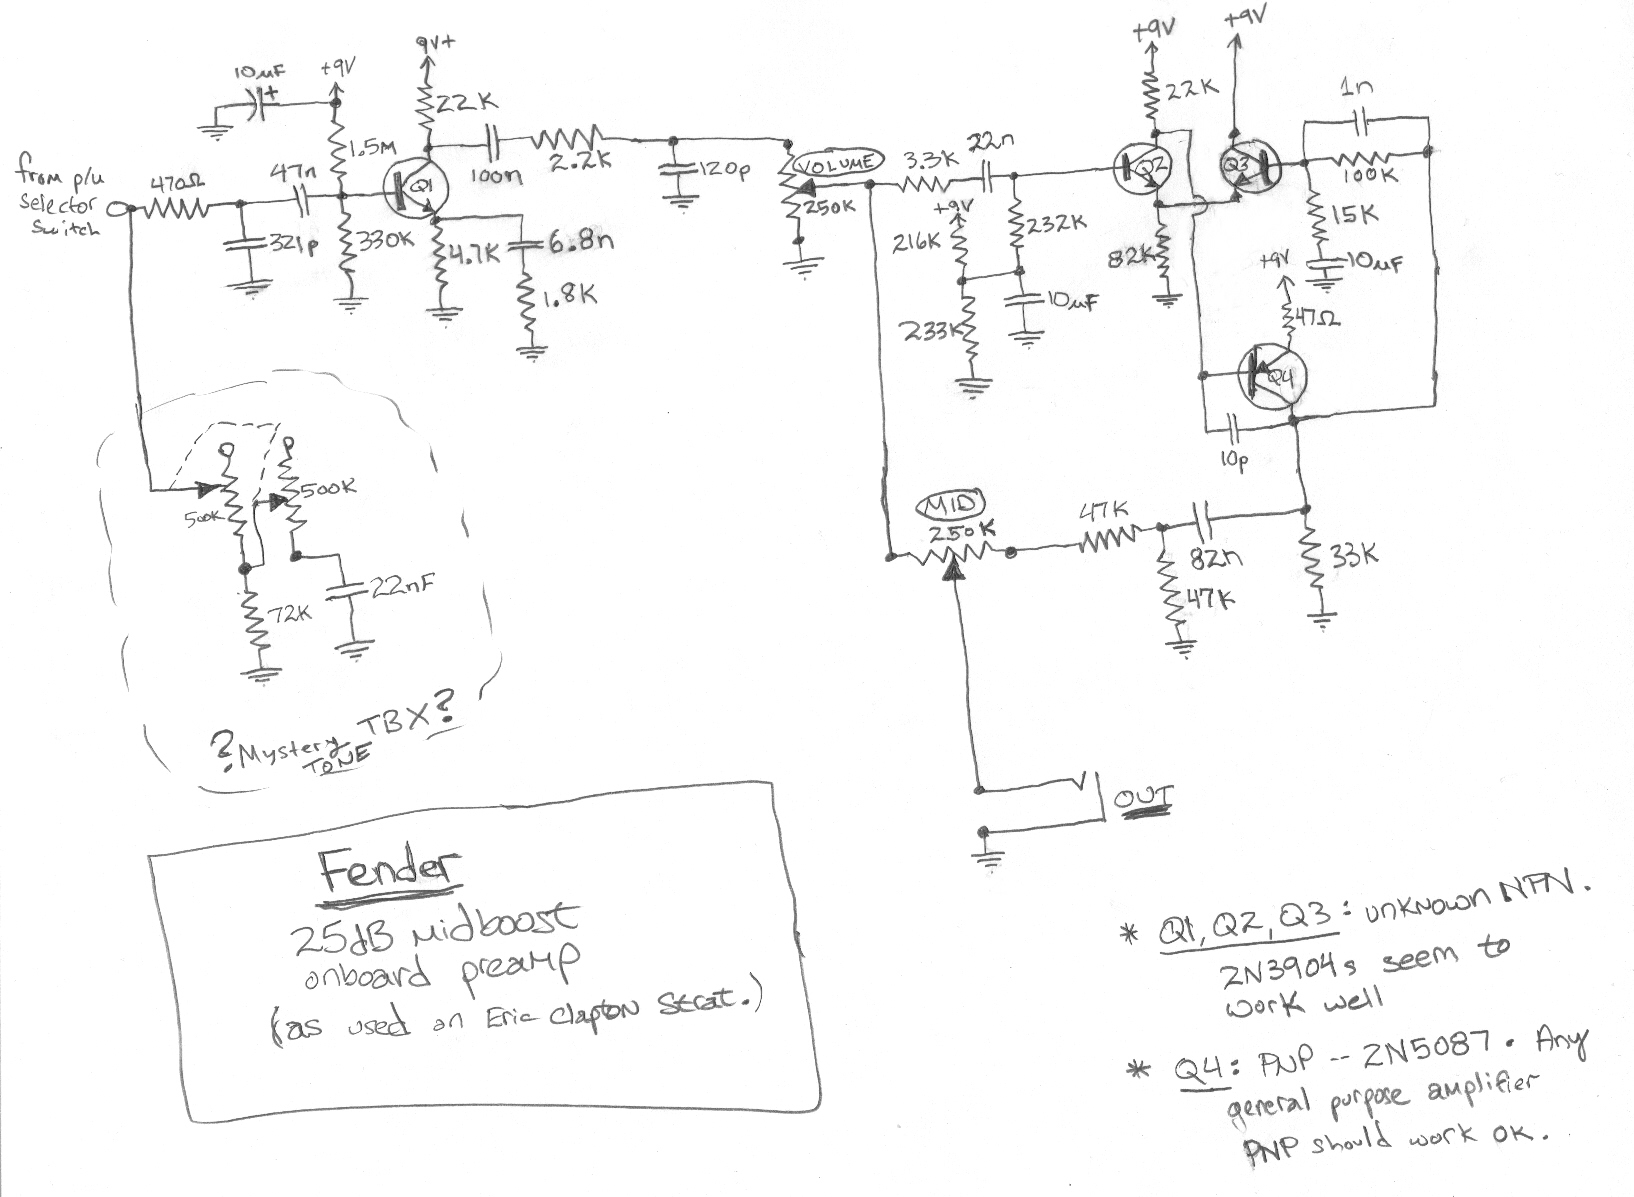 Wiring Diagram For Fender Clapton Mid Boost Kit | Wiring Liry on